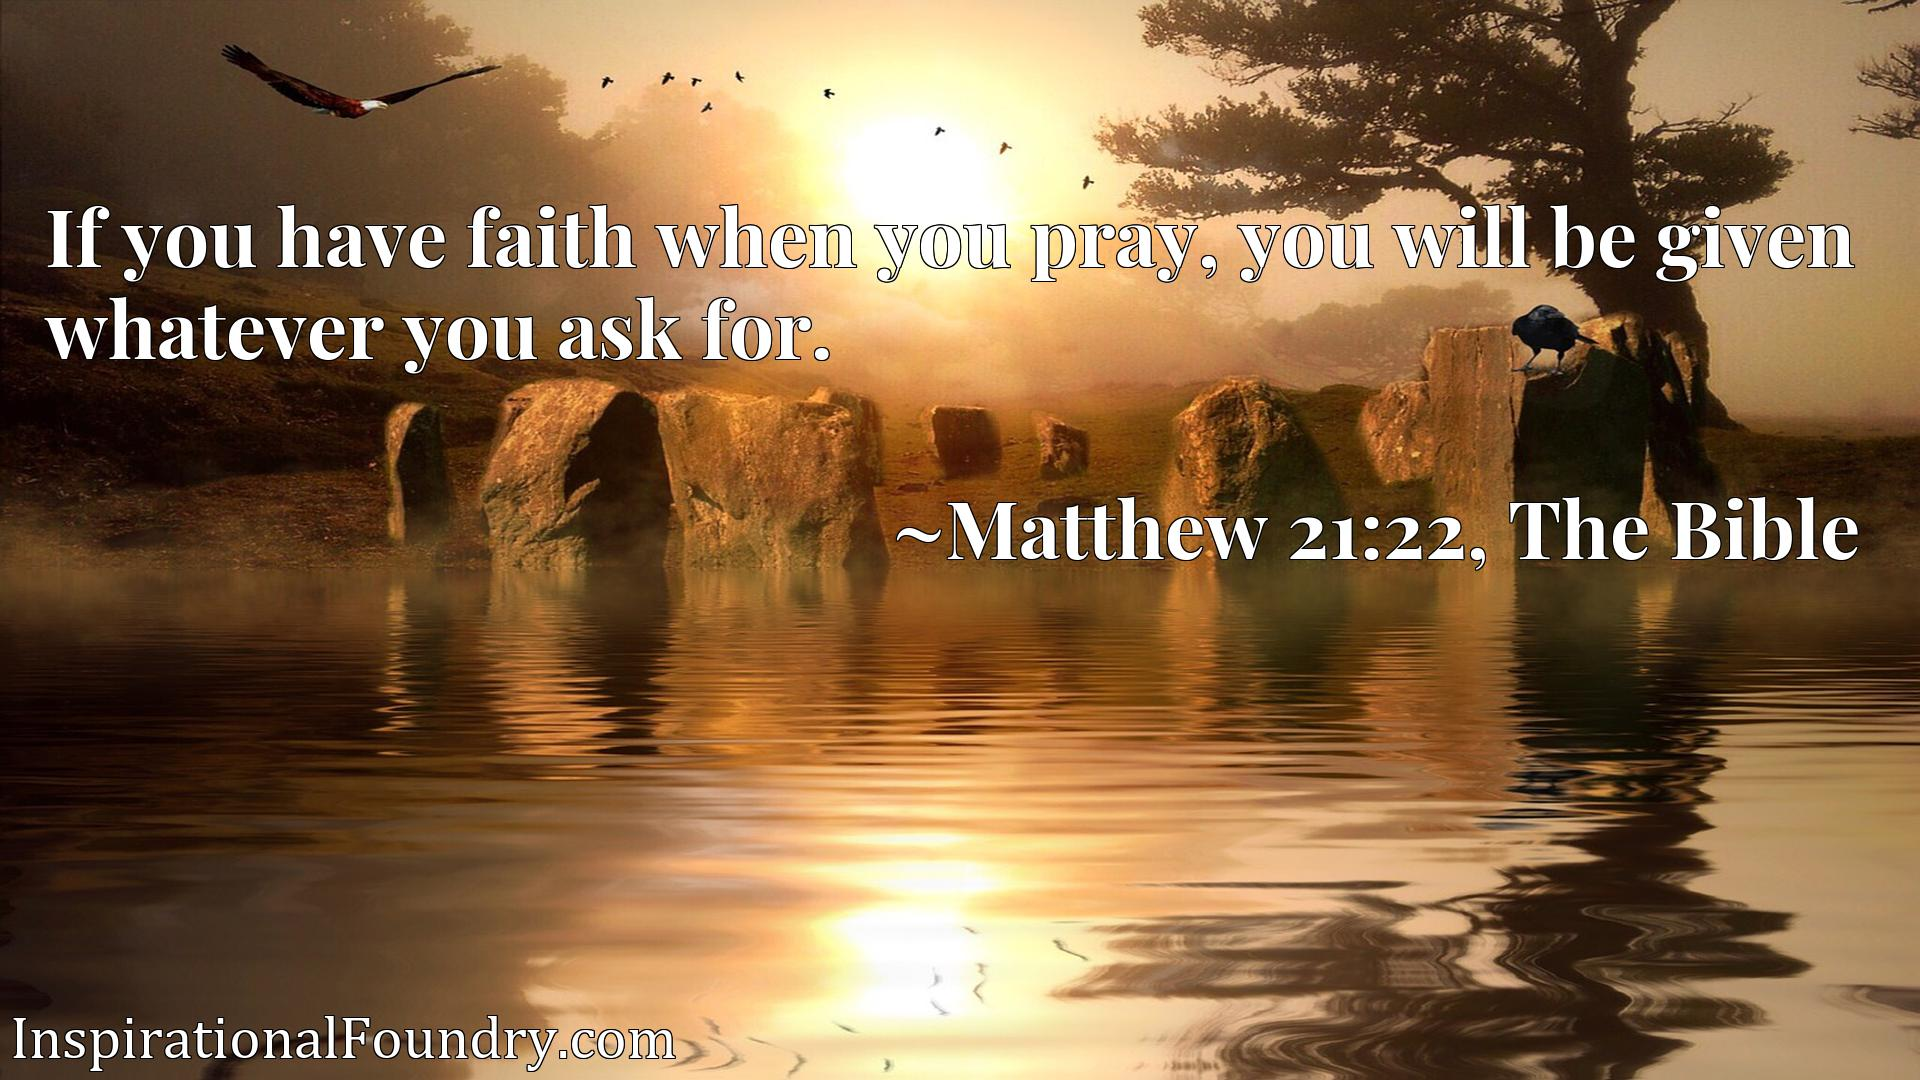 Quote Picture :If you have faith when you pray, you will be given whatever you ask for.